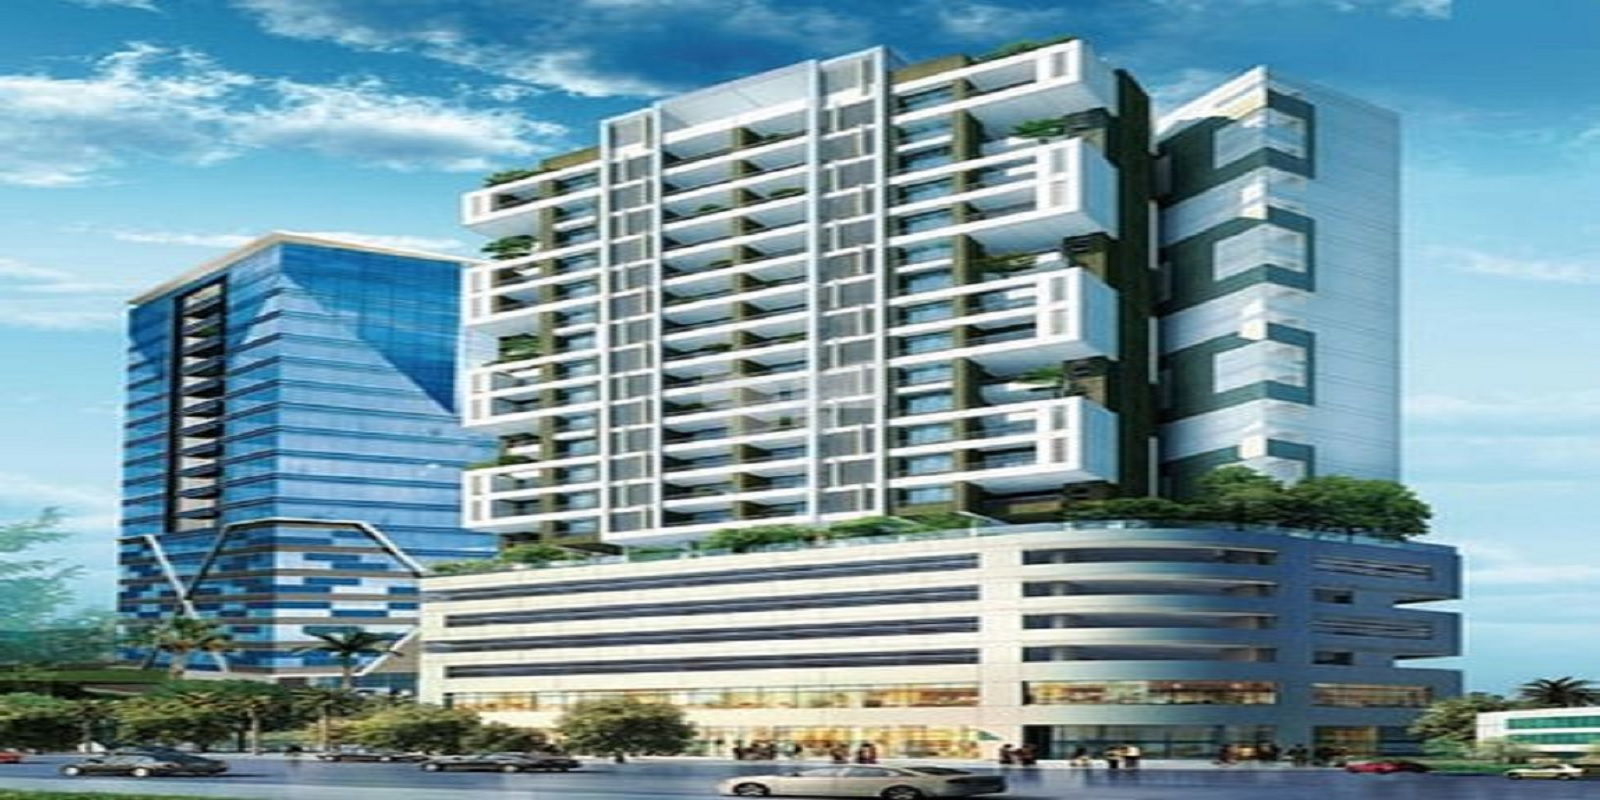 omkar woodside project large image1